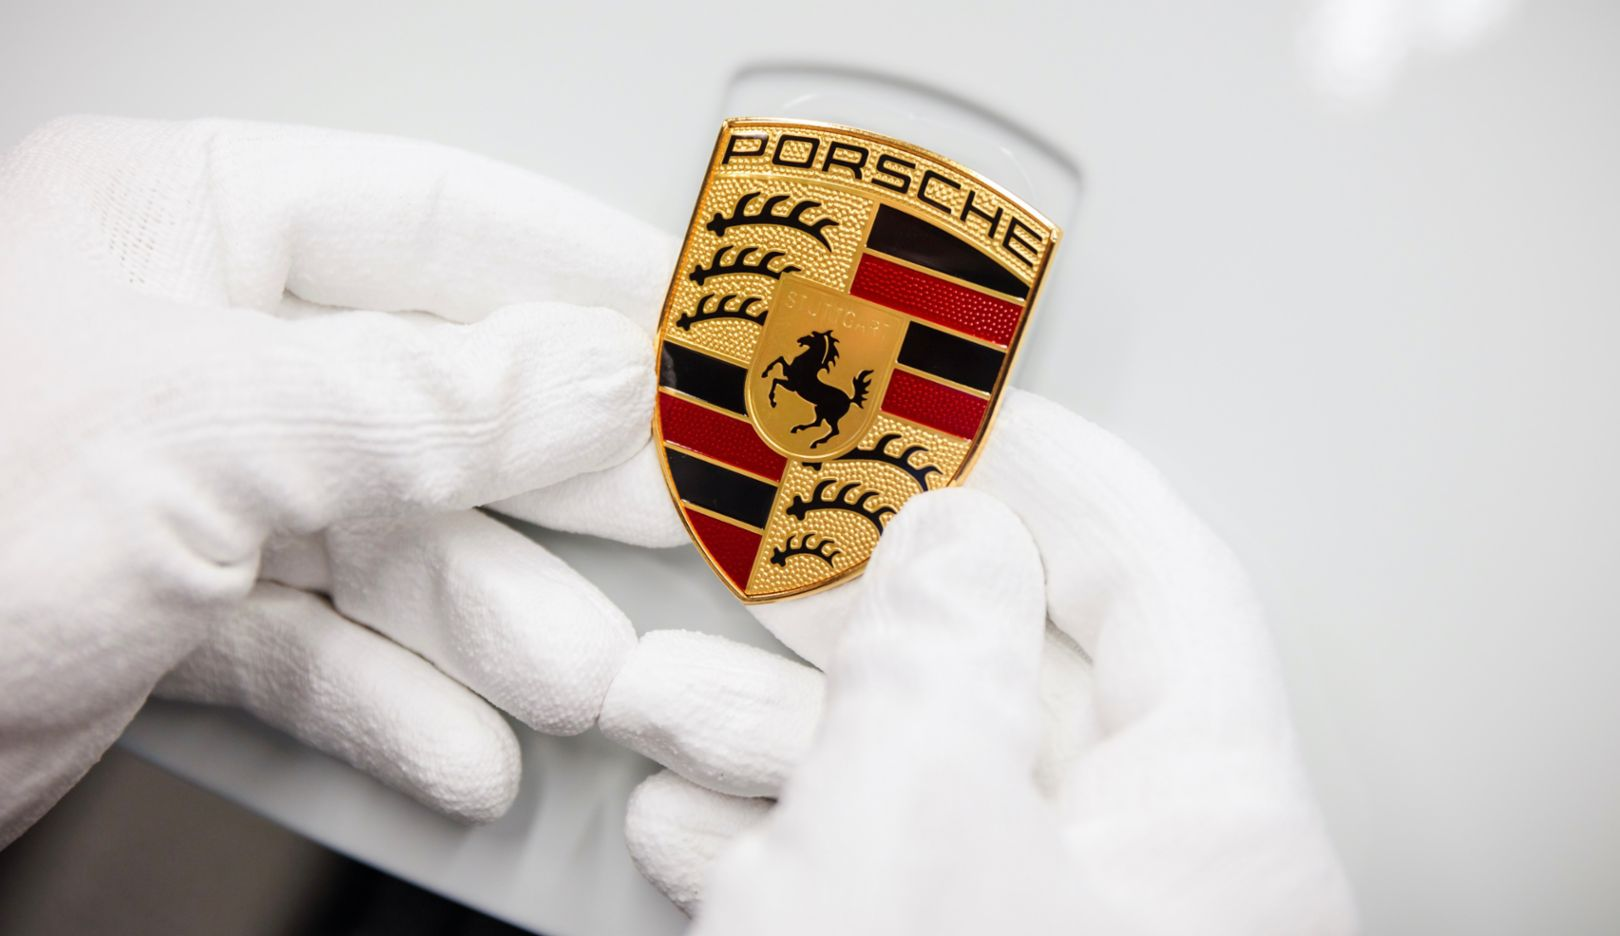 Porsche gives employees a voluntary bonus in the success year 2019 - Image 1